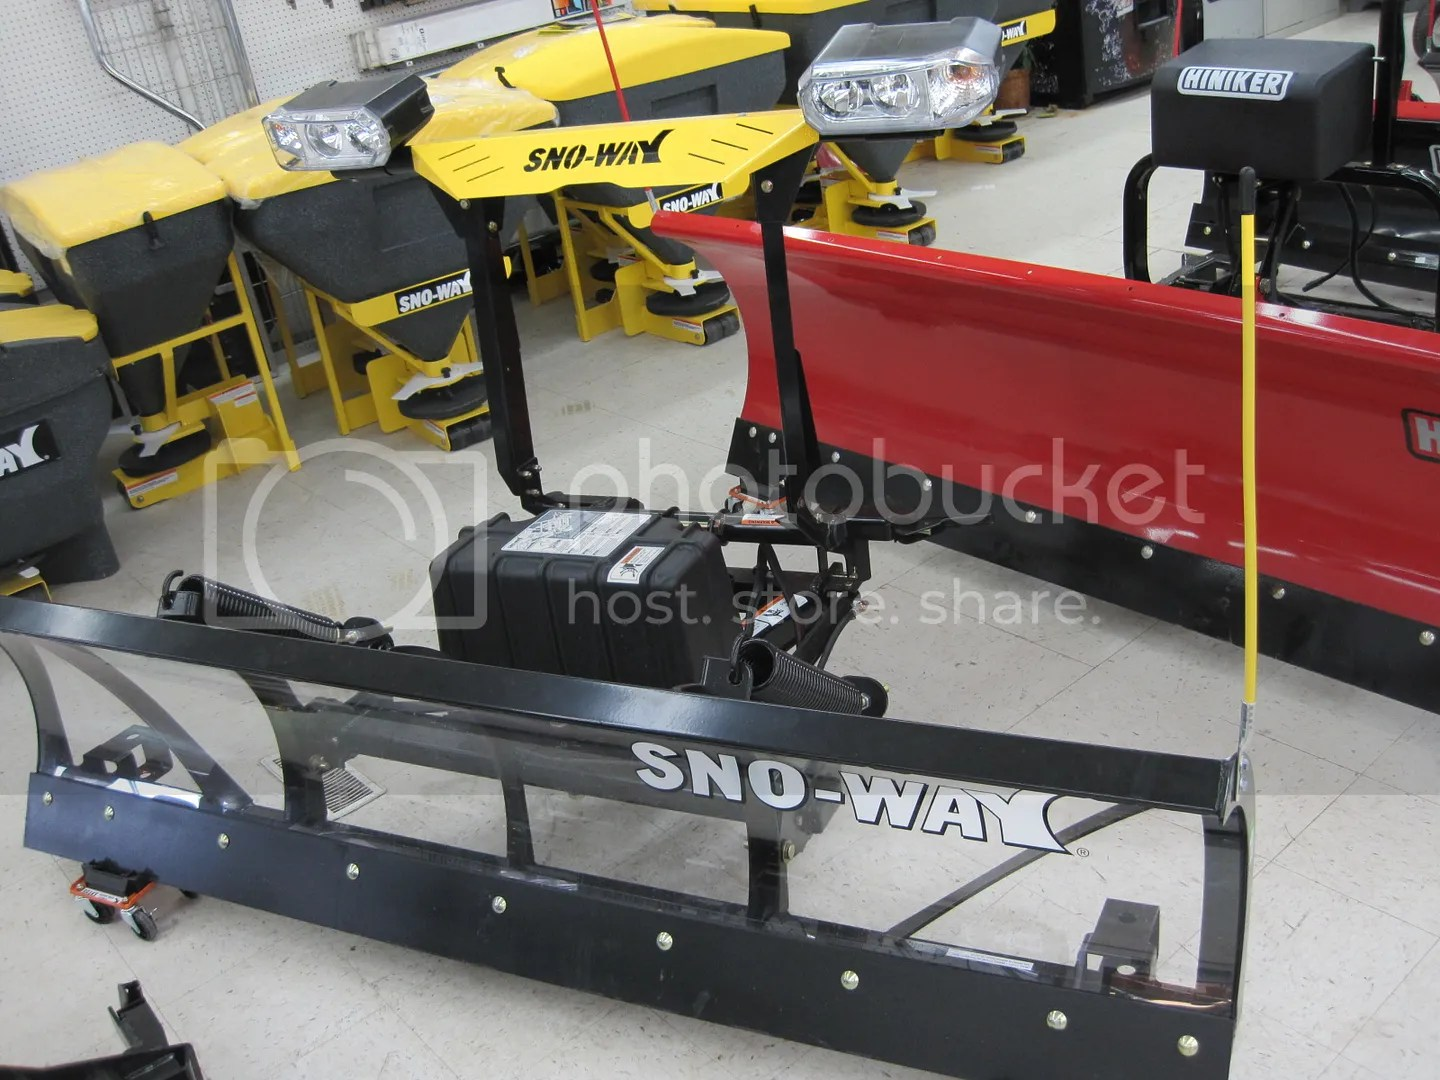 sno way plow wiring diagram carrier 30hxc chiller harness get free image about